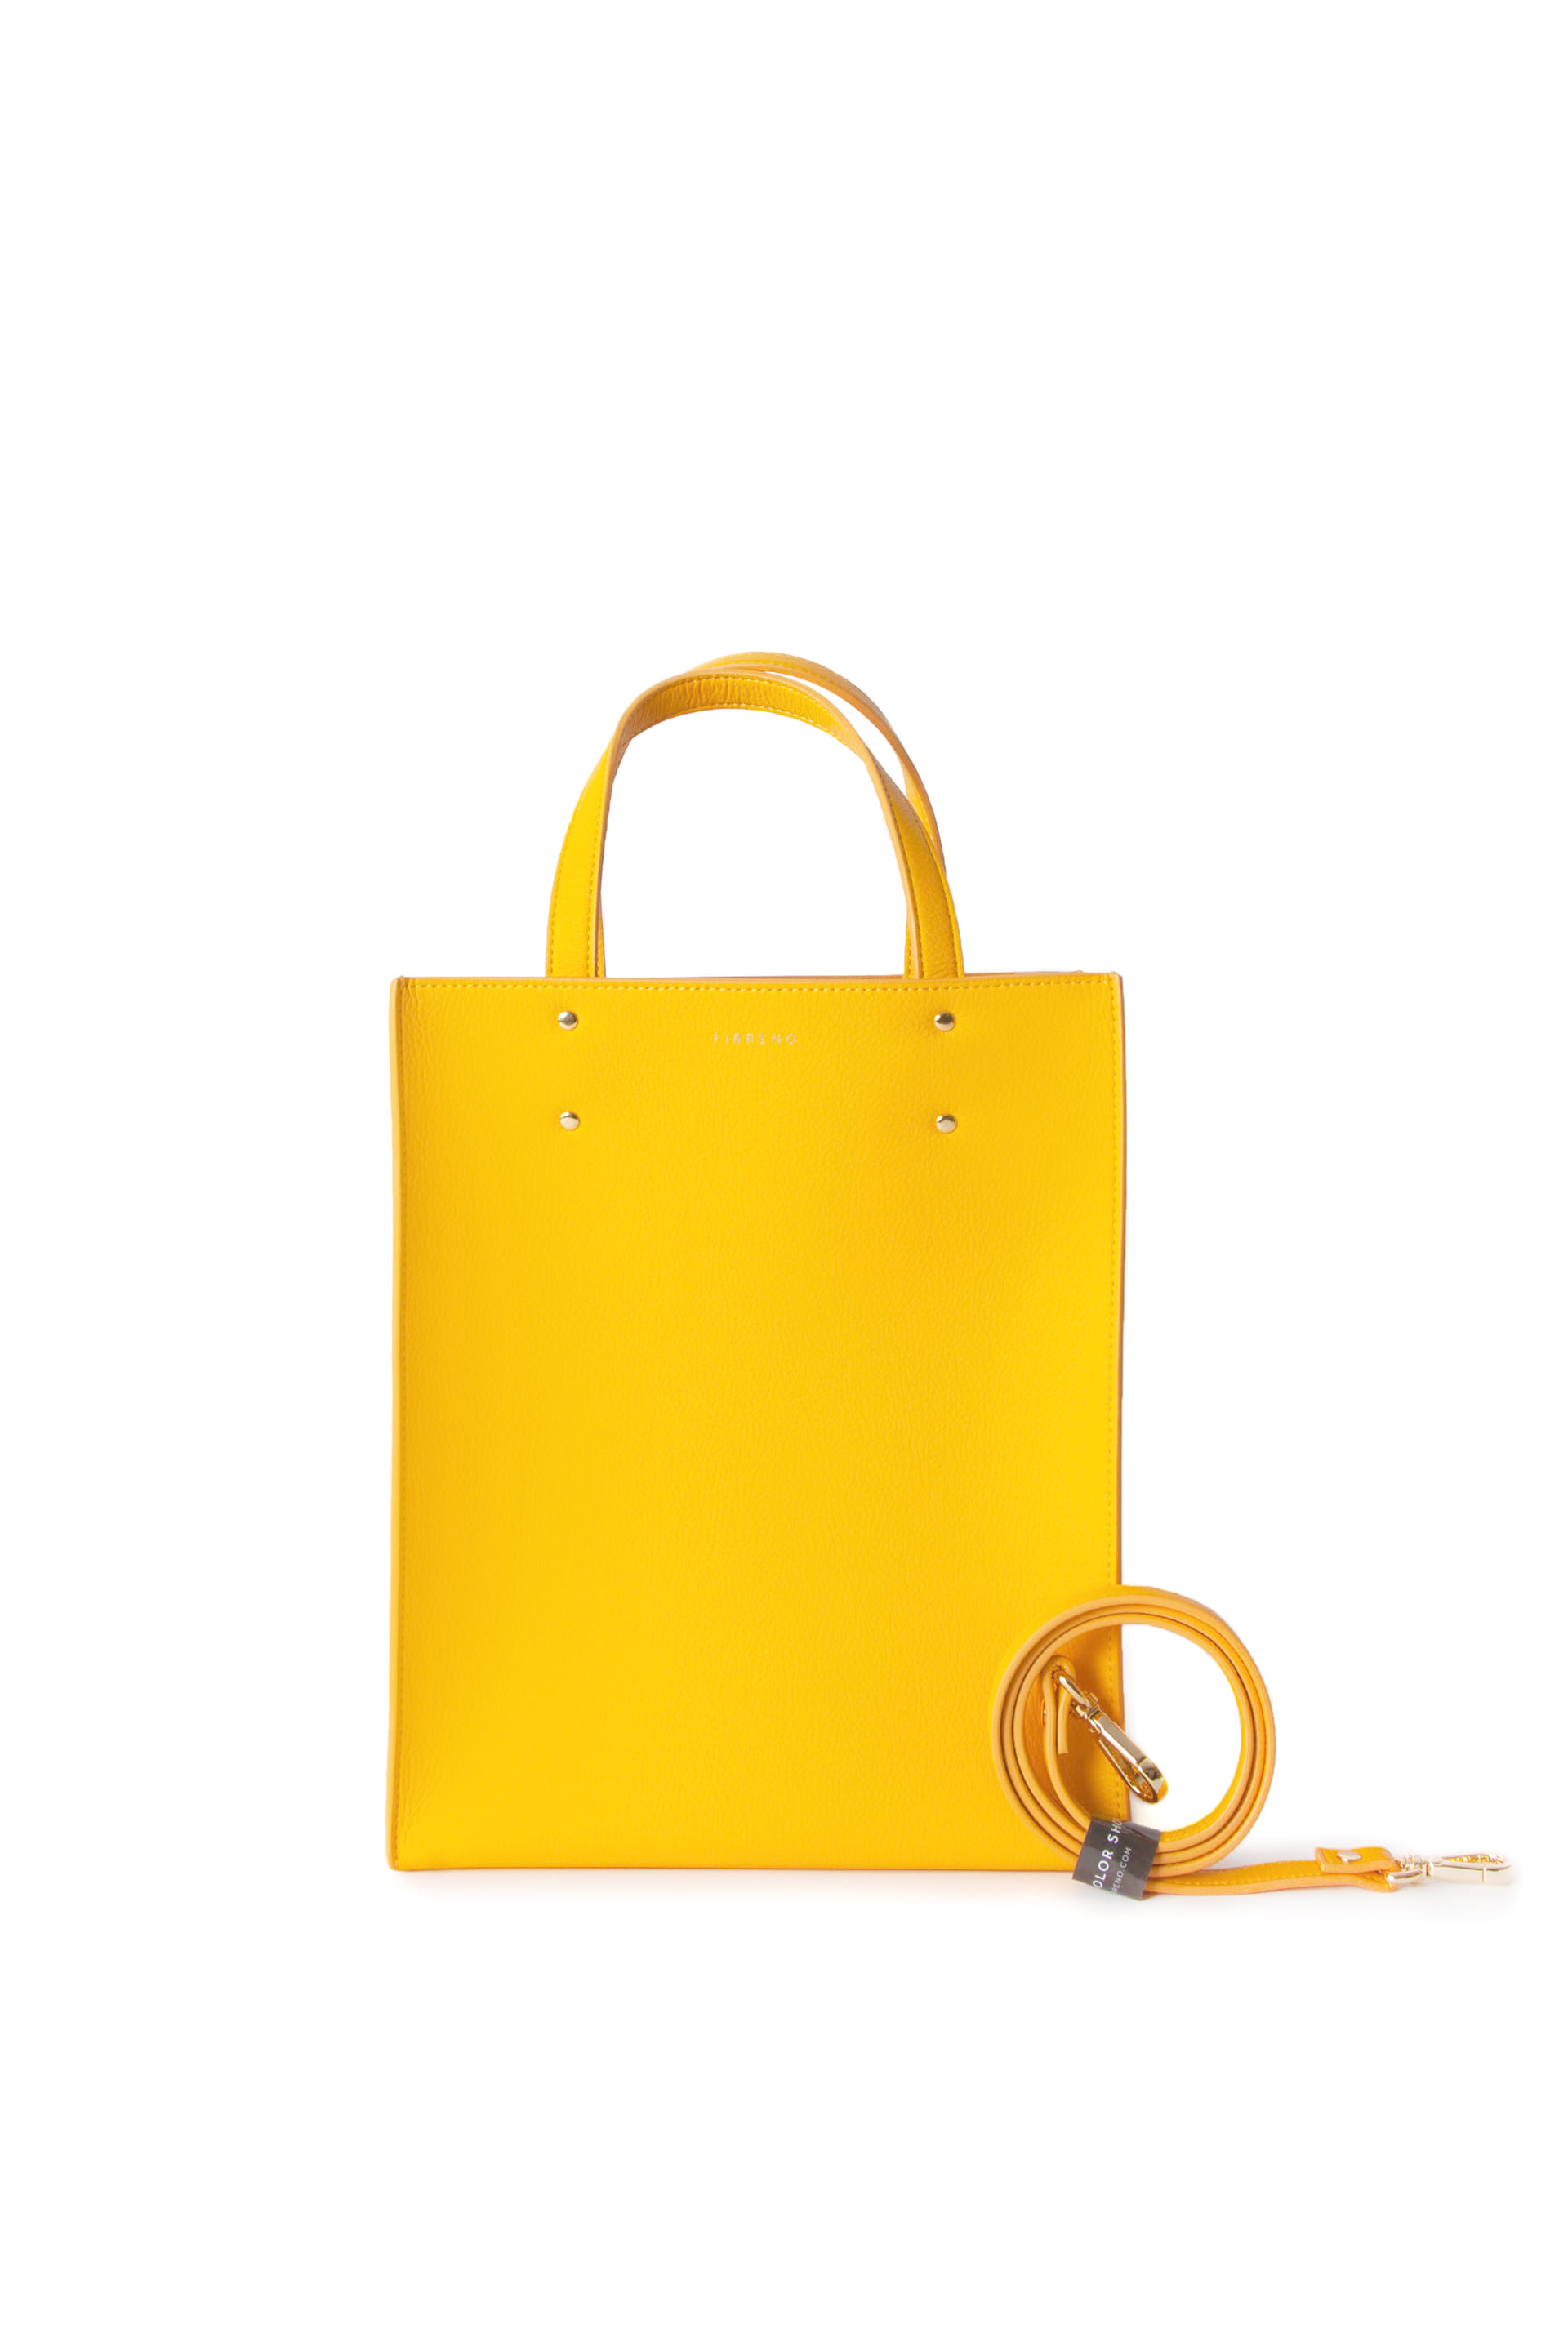 ORIGINAL MINI BAG 01 R.Yellow